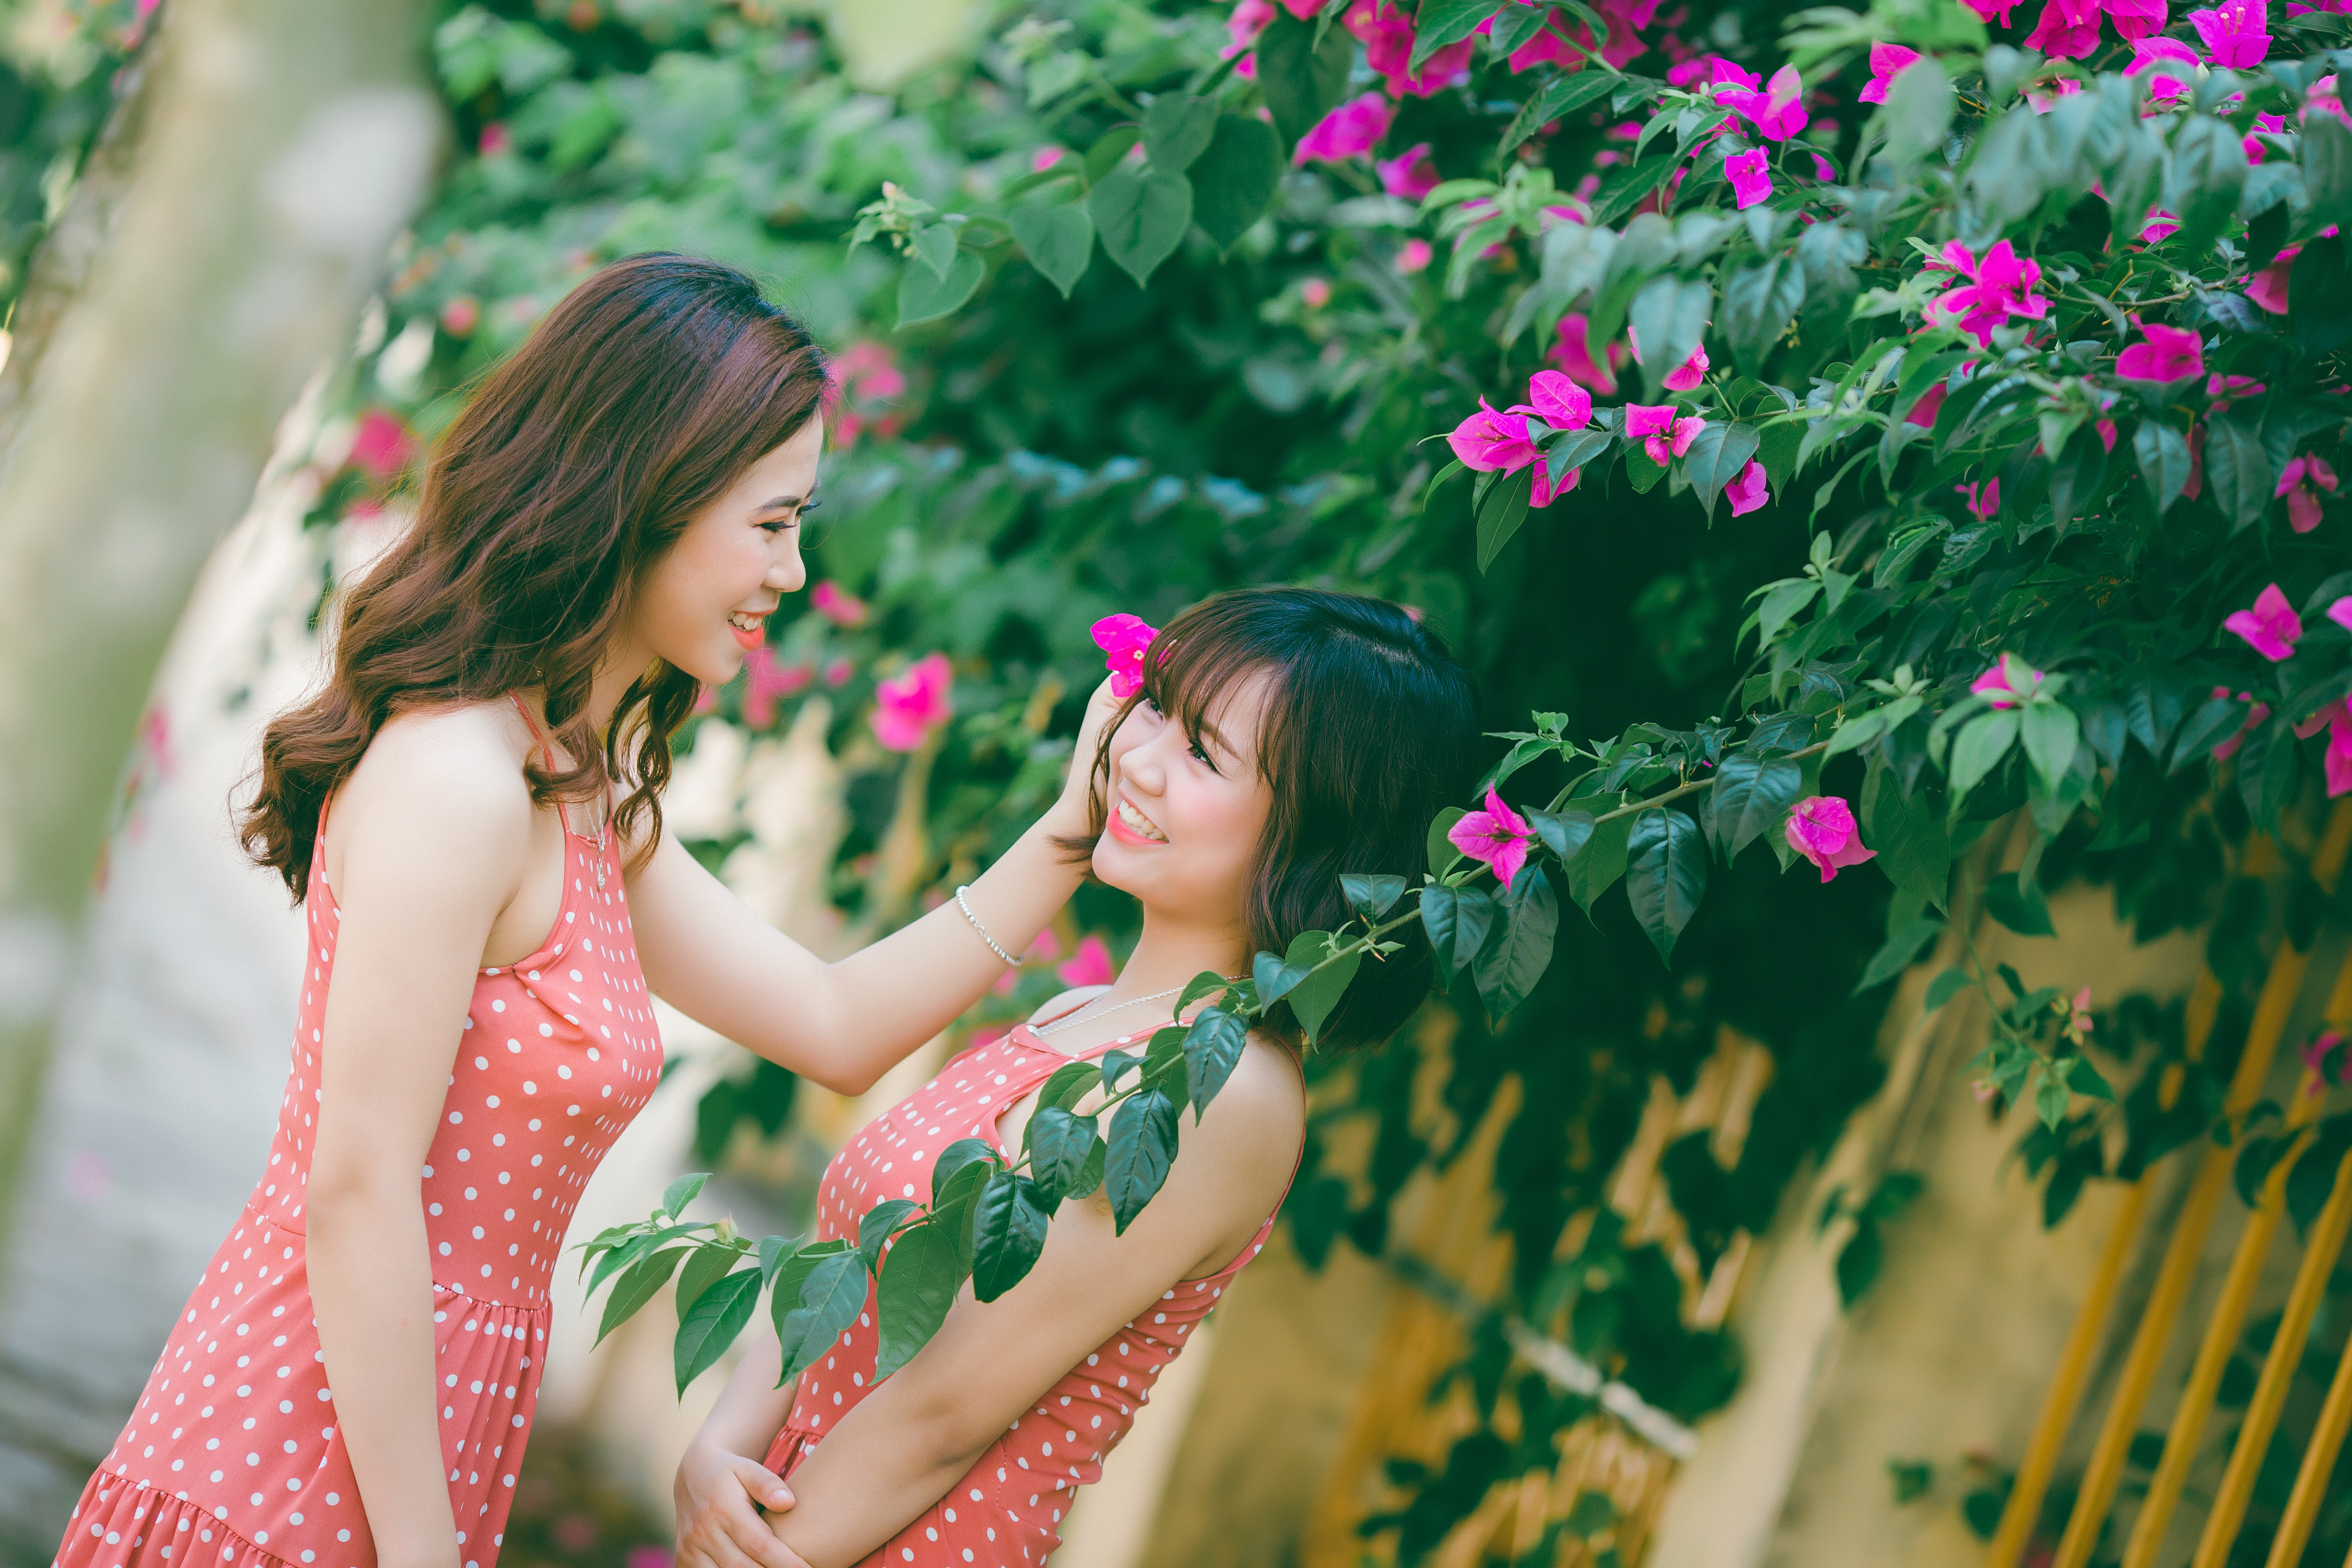 two women in dotted sleeveless shirt beside flowers